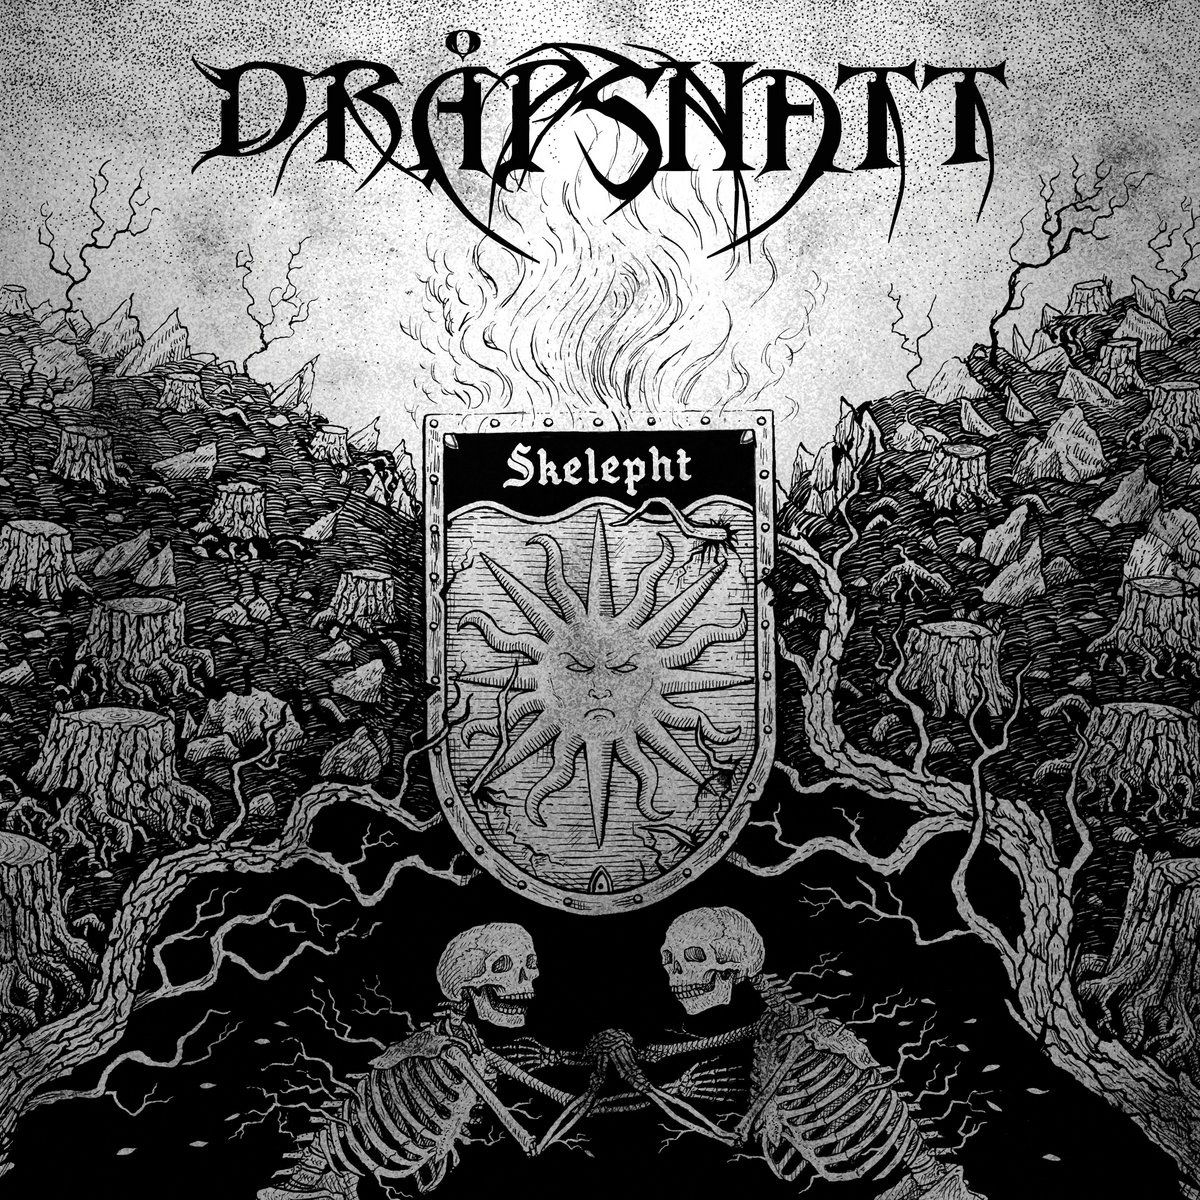 Review for Dråpsnatt - Skelepht